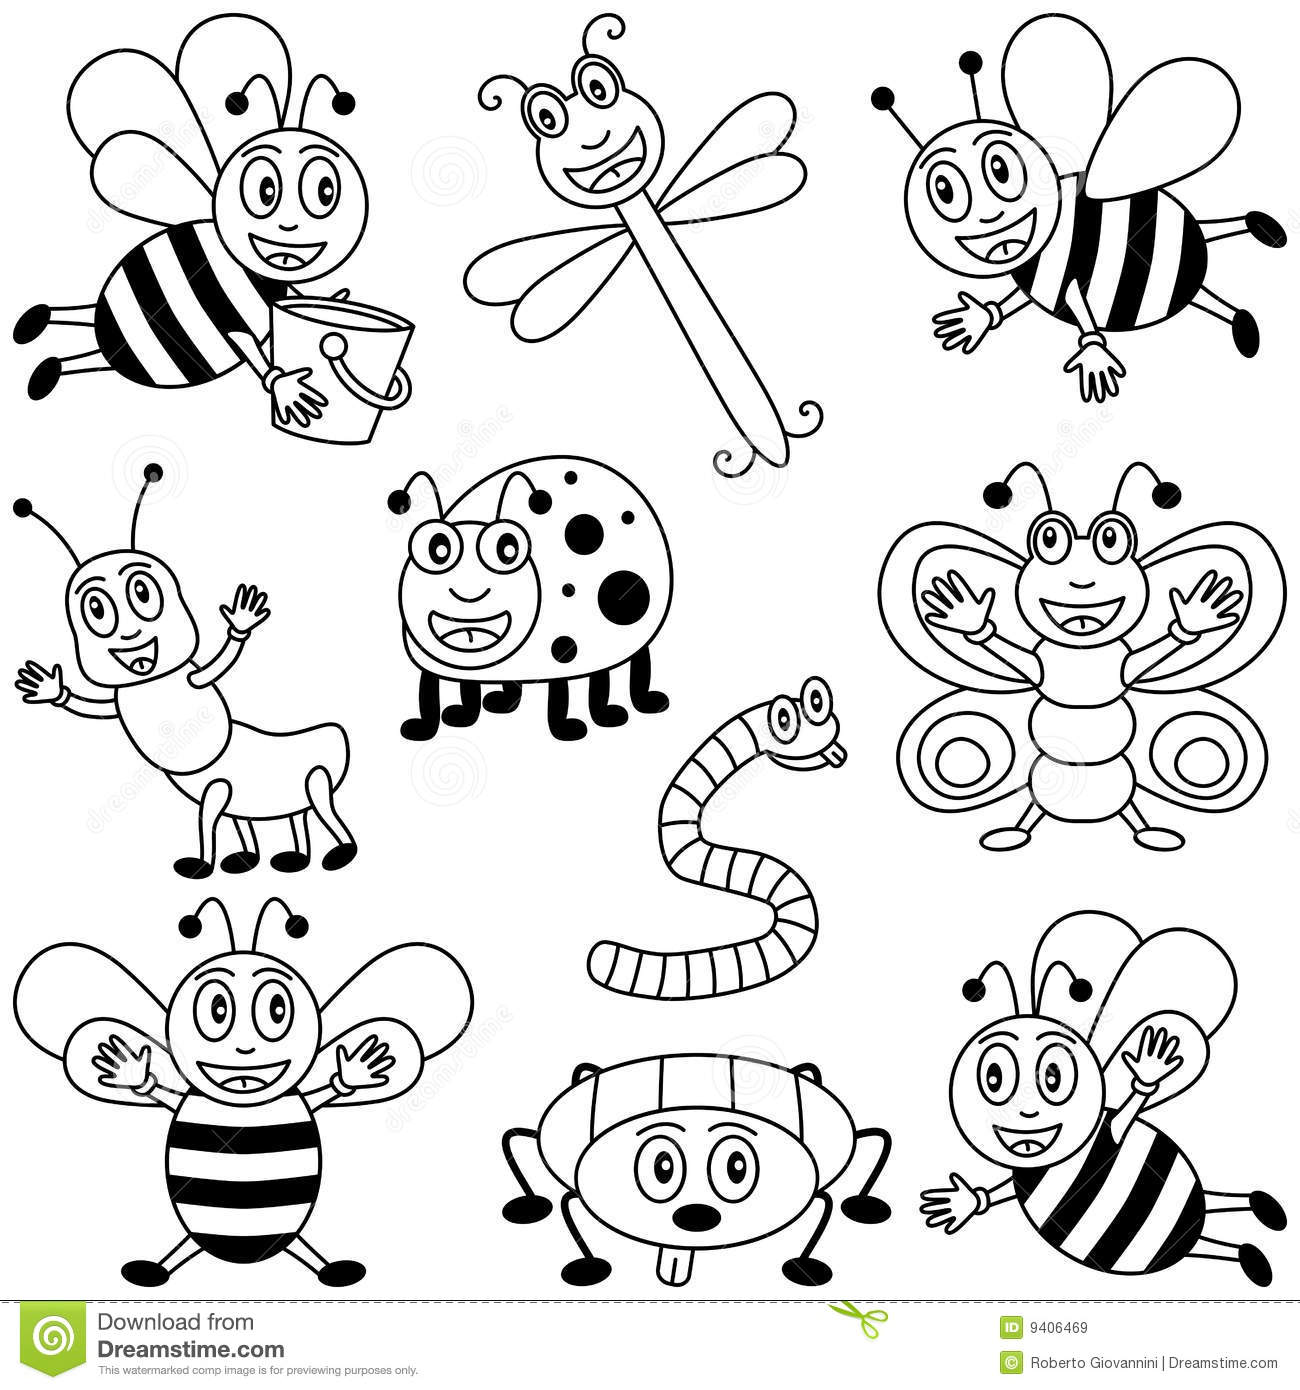 coloring pictures of insects coloring insects for kids stock vector illustration of insects coloring pictures of